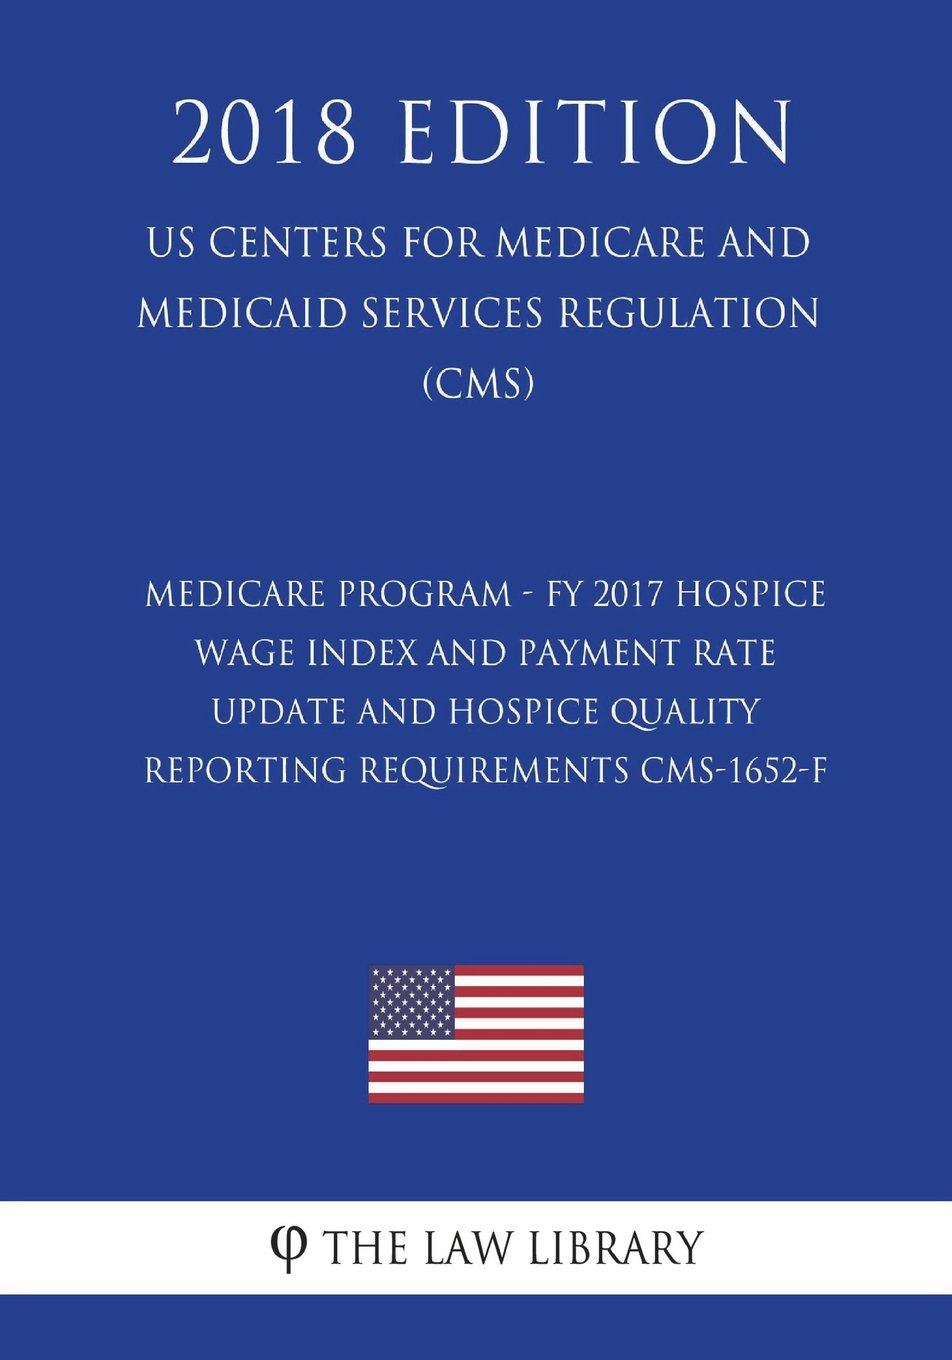 Download Medicare Program - FY 2017 Hospice Wage Index and Payment Rate Update and Hospice Quality Reporting Requirements CMS-1652-F (US Centers for Medicare ... Services Regulation) (CMS) (2018 Edition) ebook